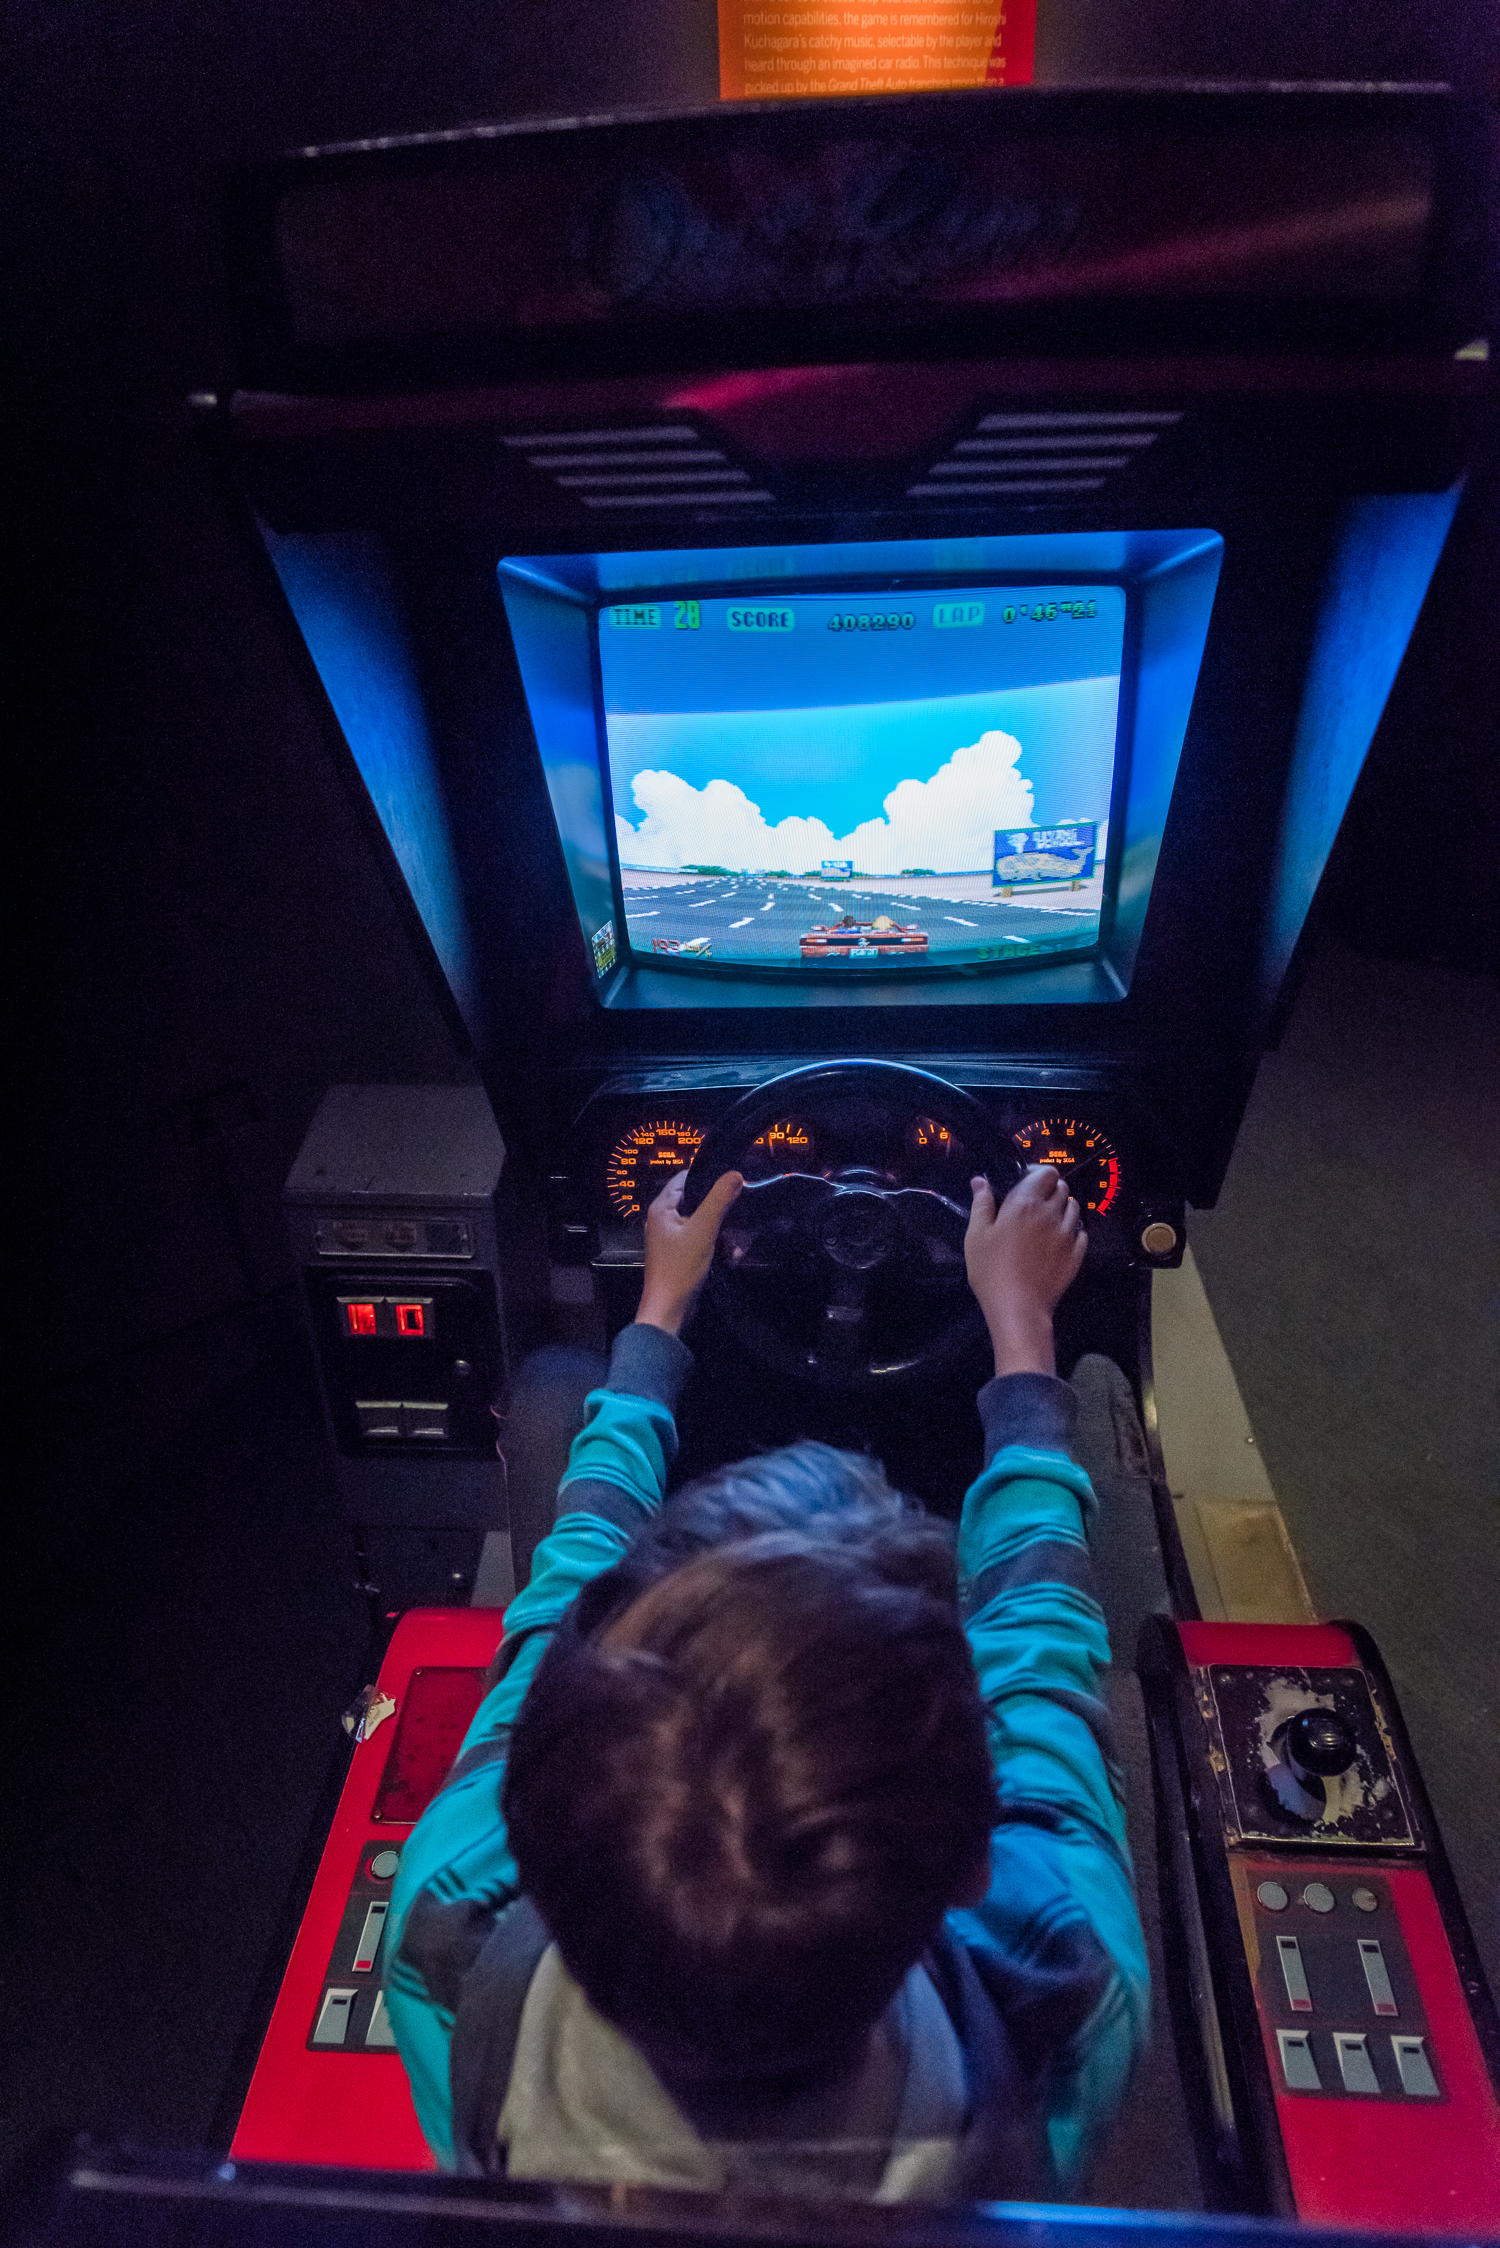 This Museum Lets You Play 23 Classic Video Games from the